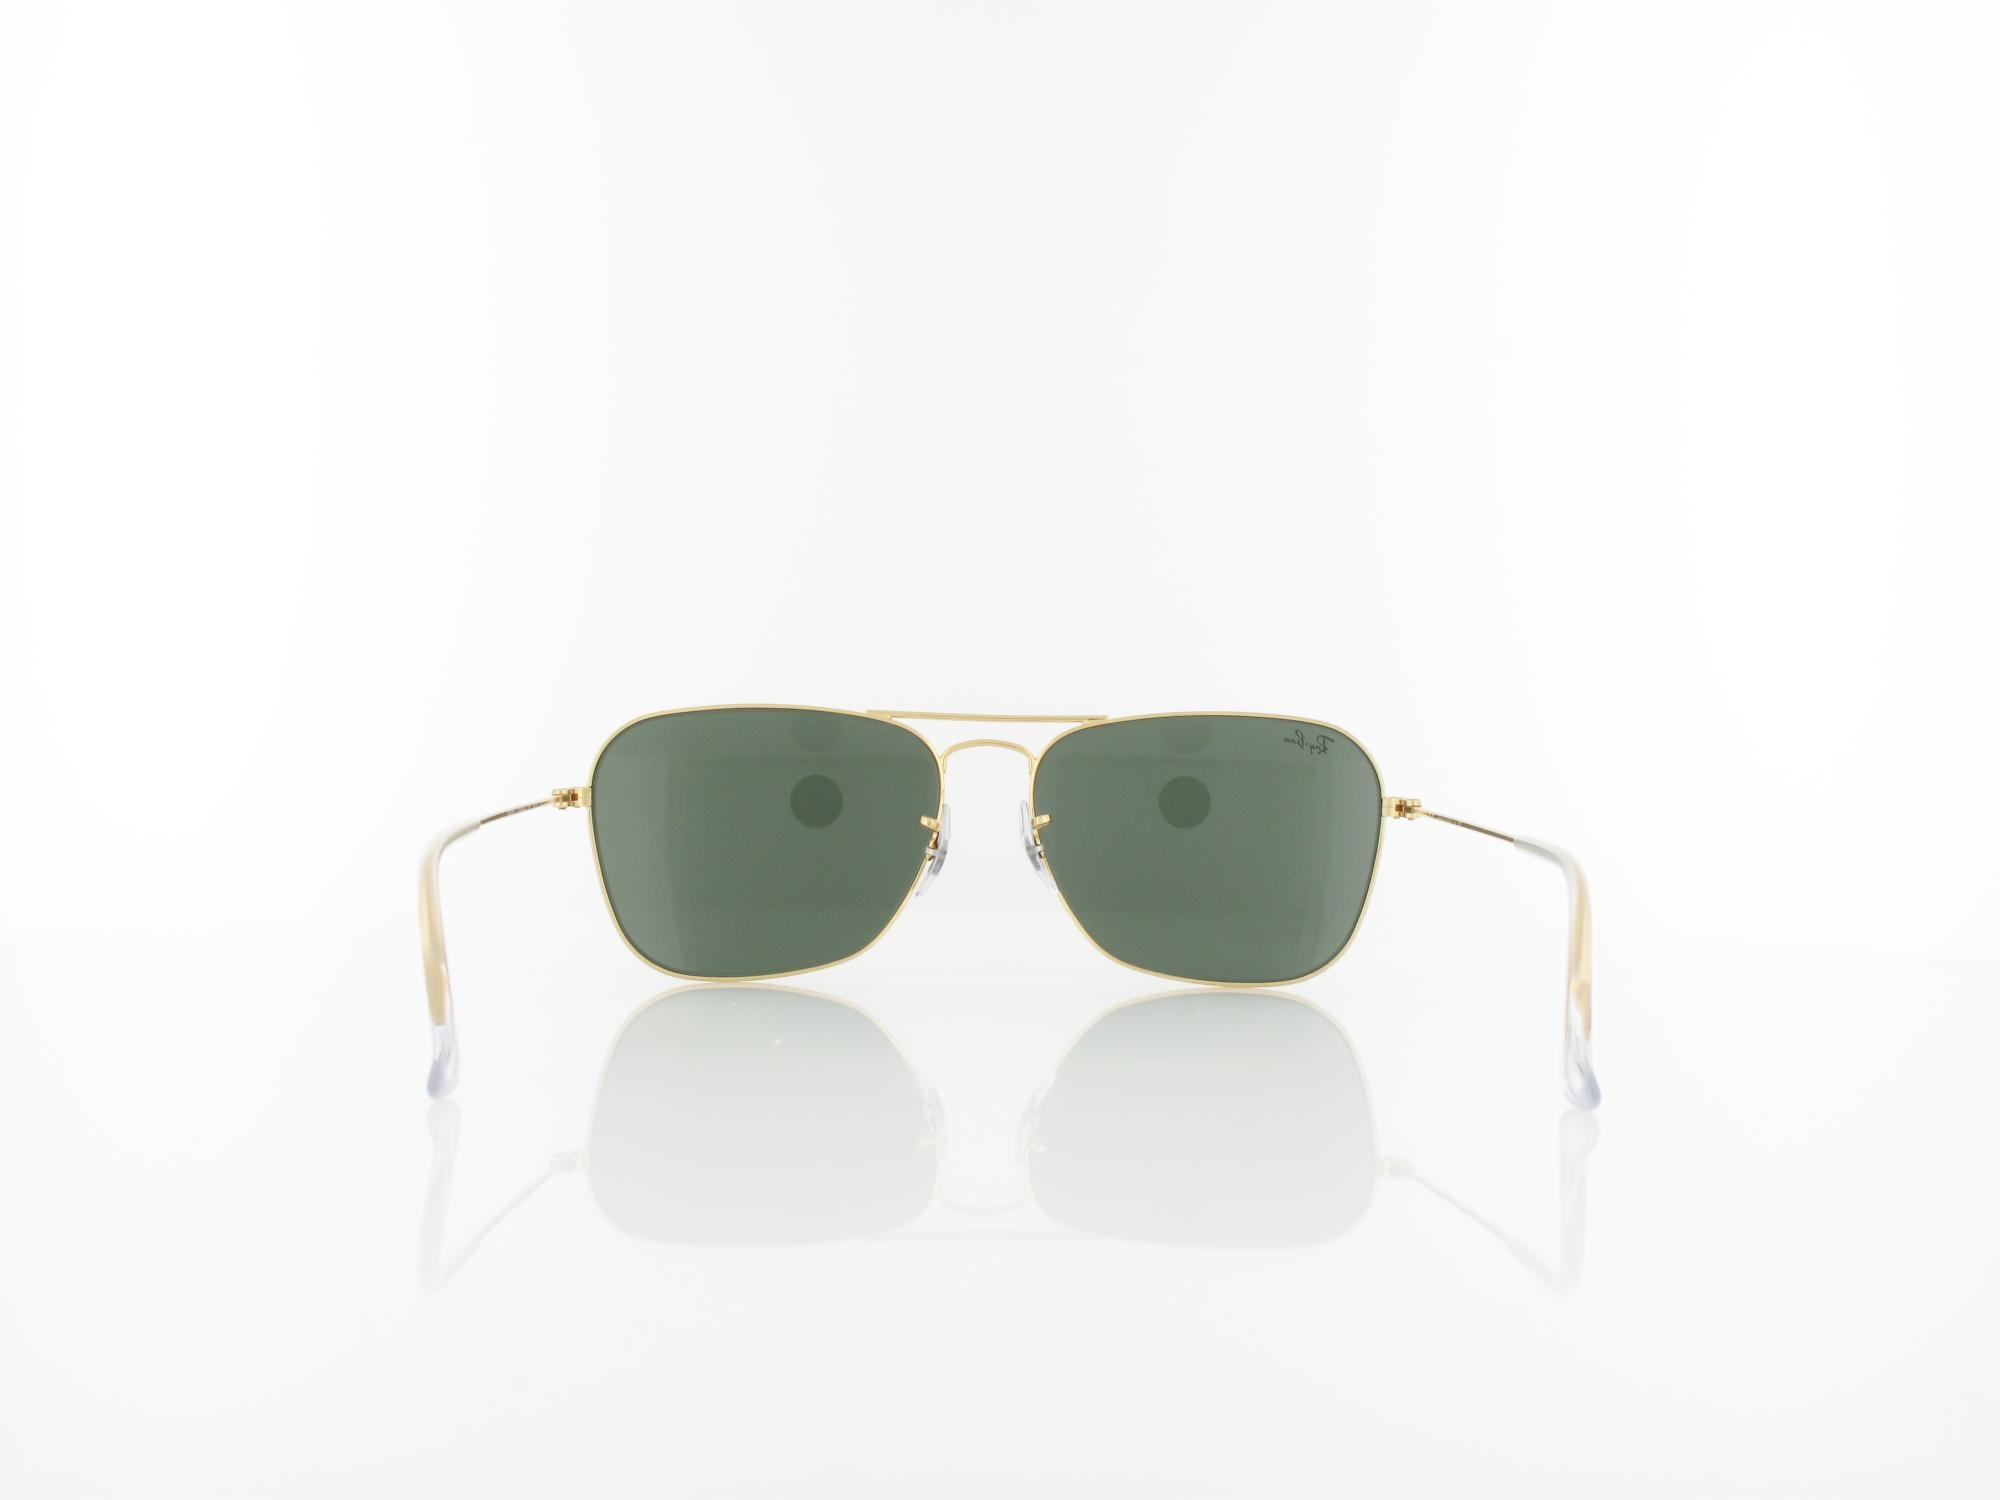 Ray Ban | Caravan RB3136 001 58 | arista / crystal green